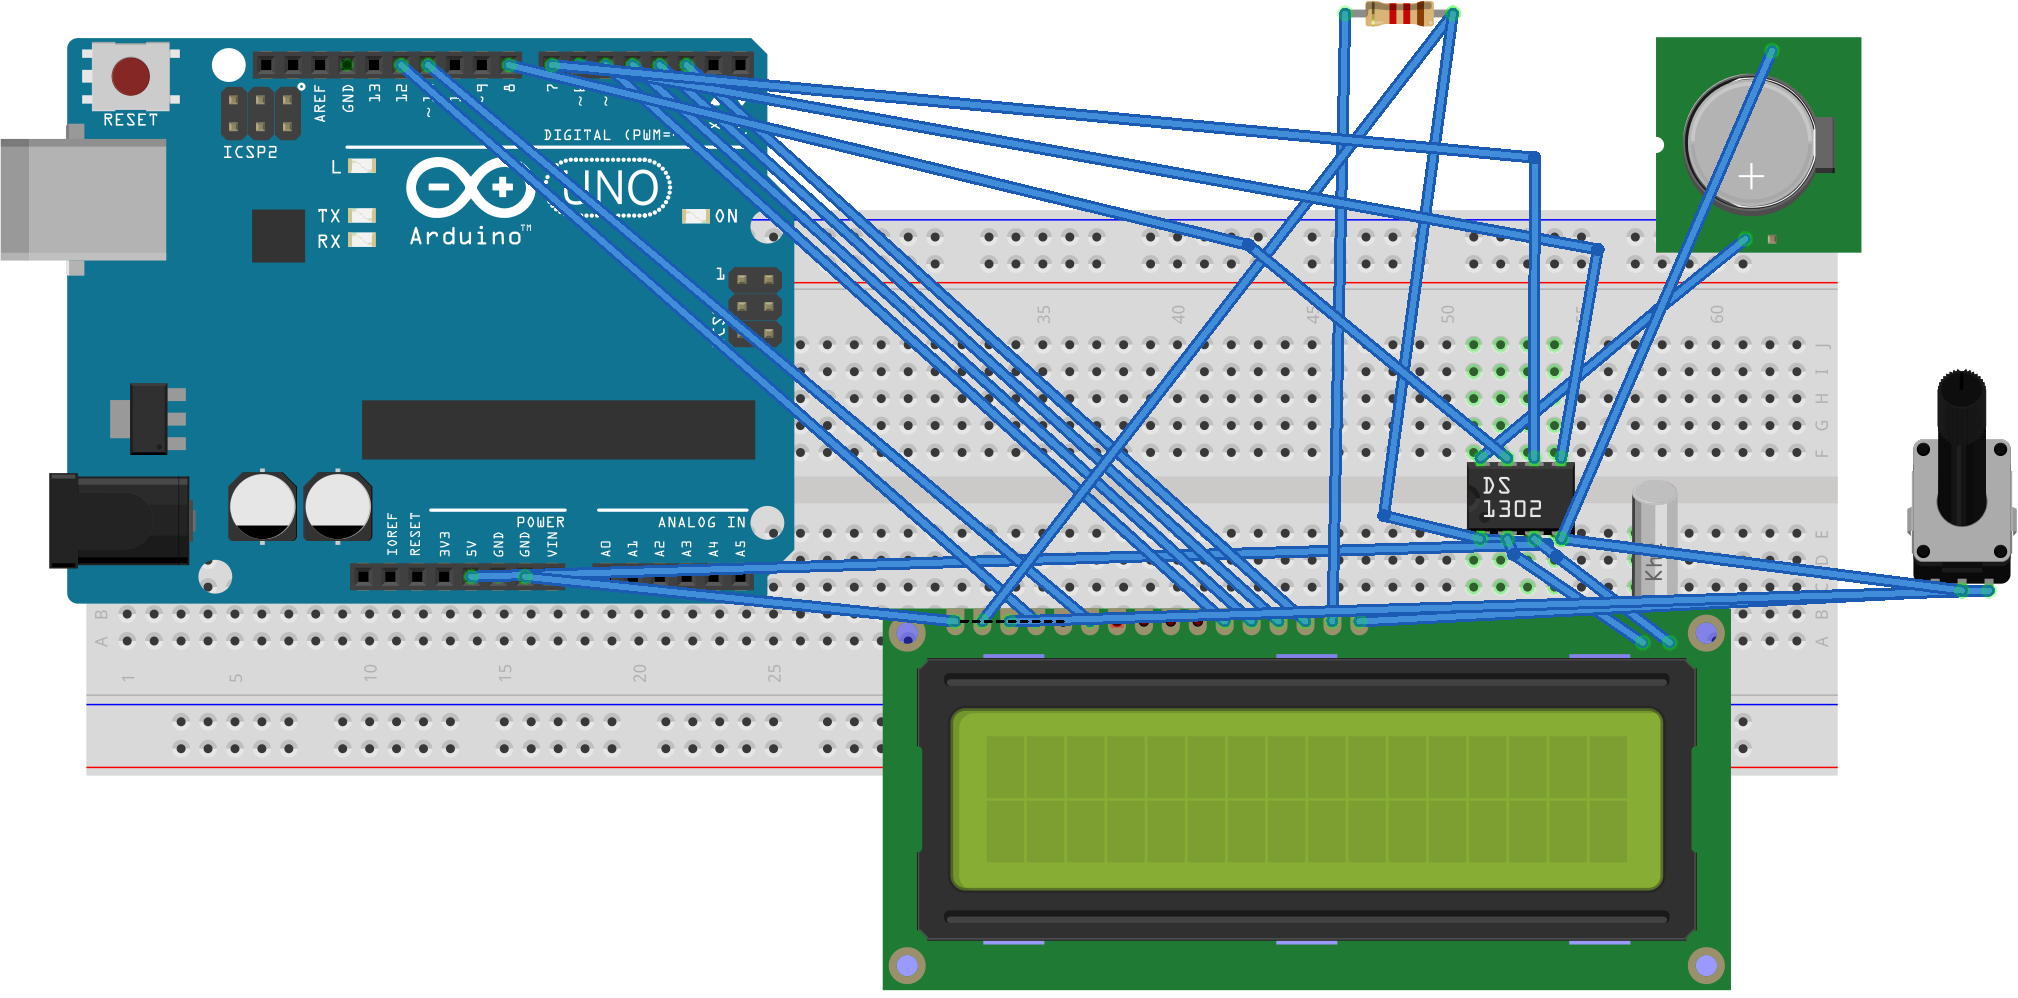 How to make digital clock using Arduino and DS1302 - Digital Lab